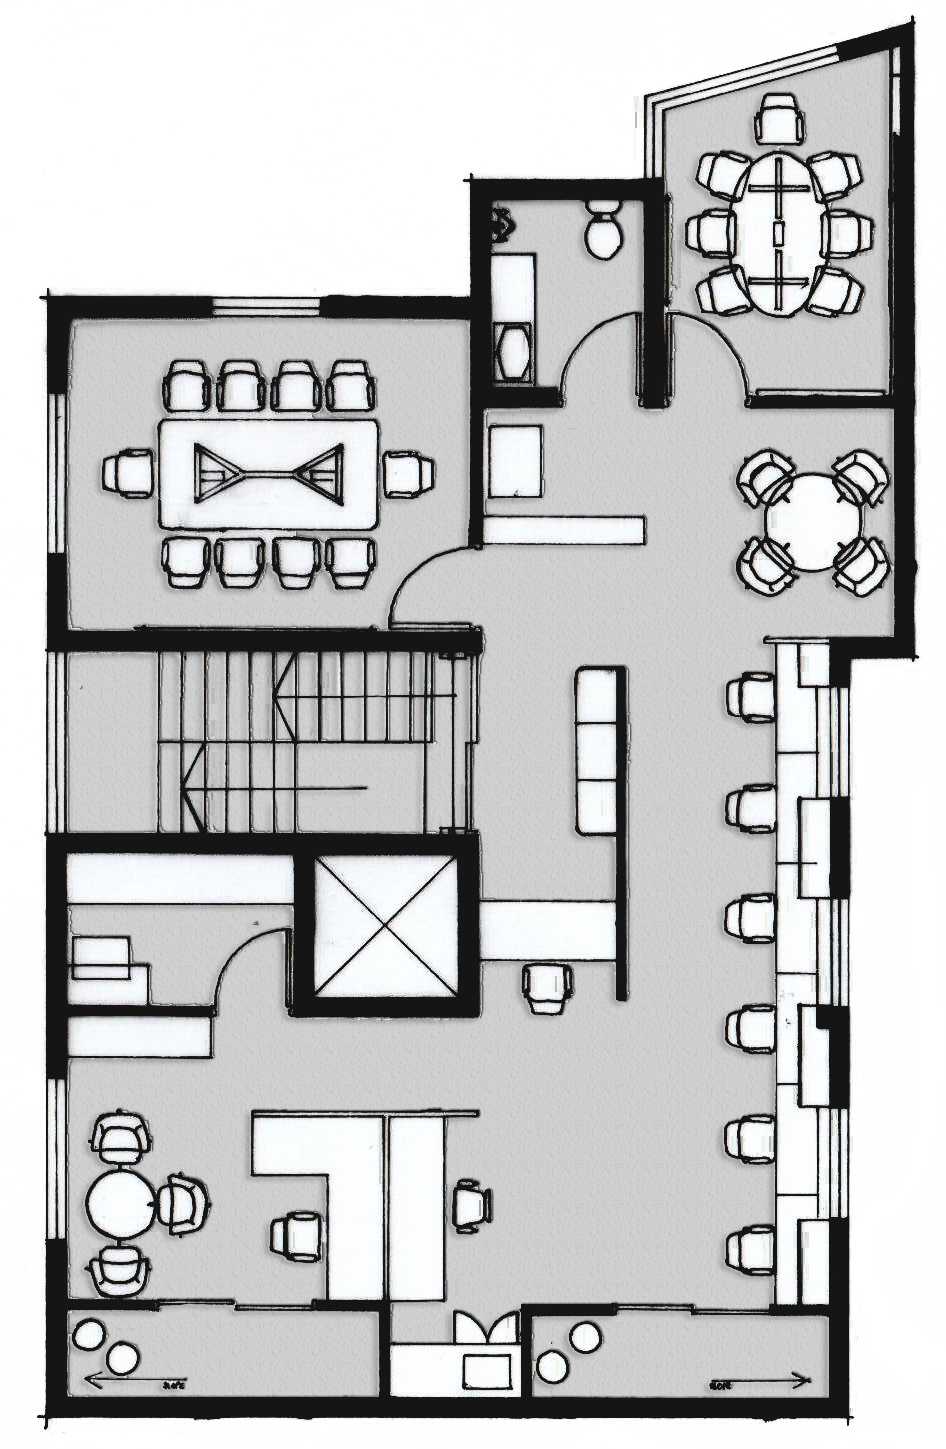 MAIA - Floor Plan.jpg